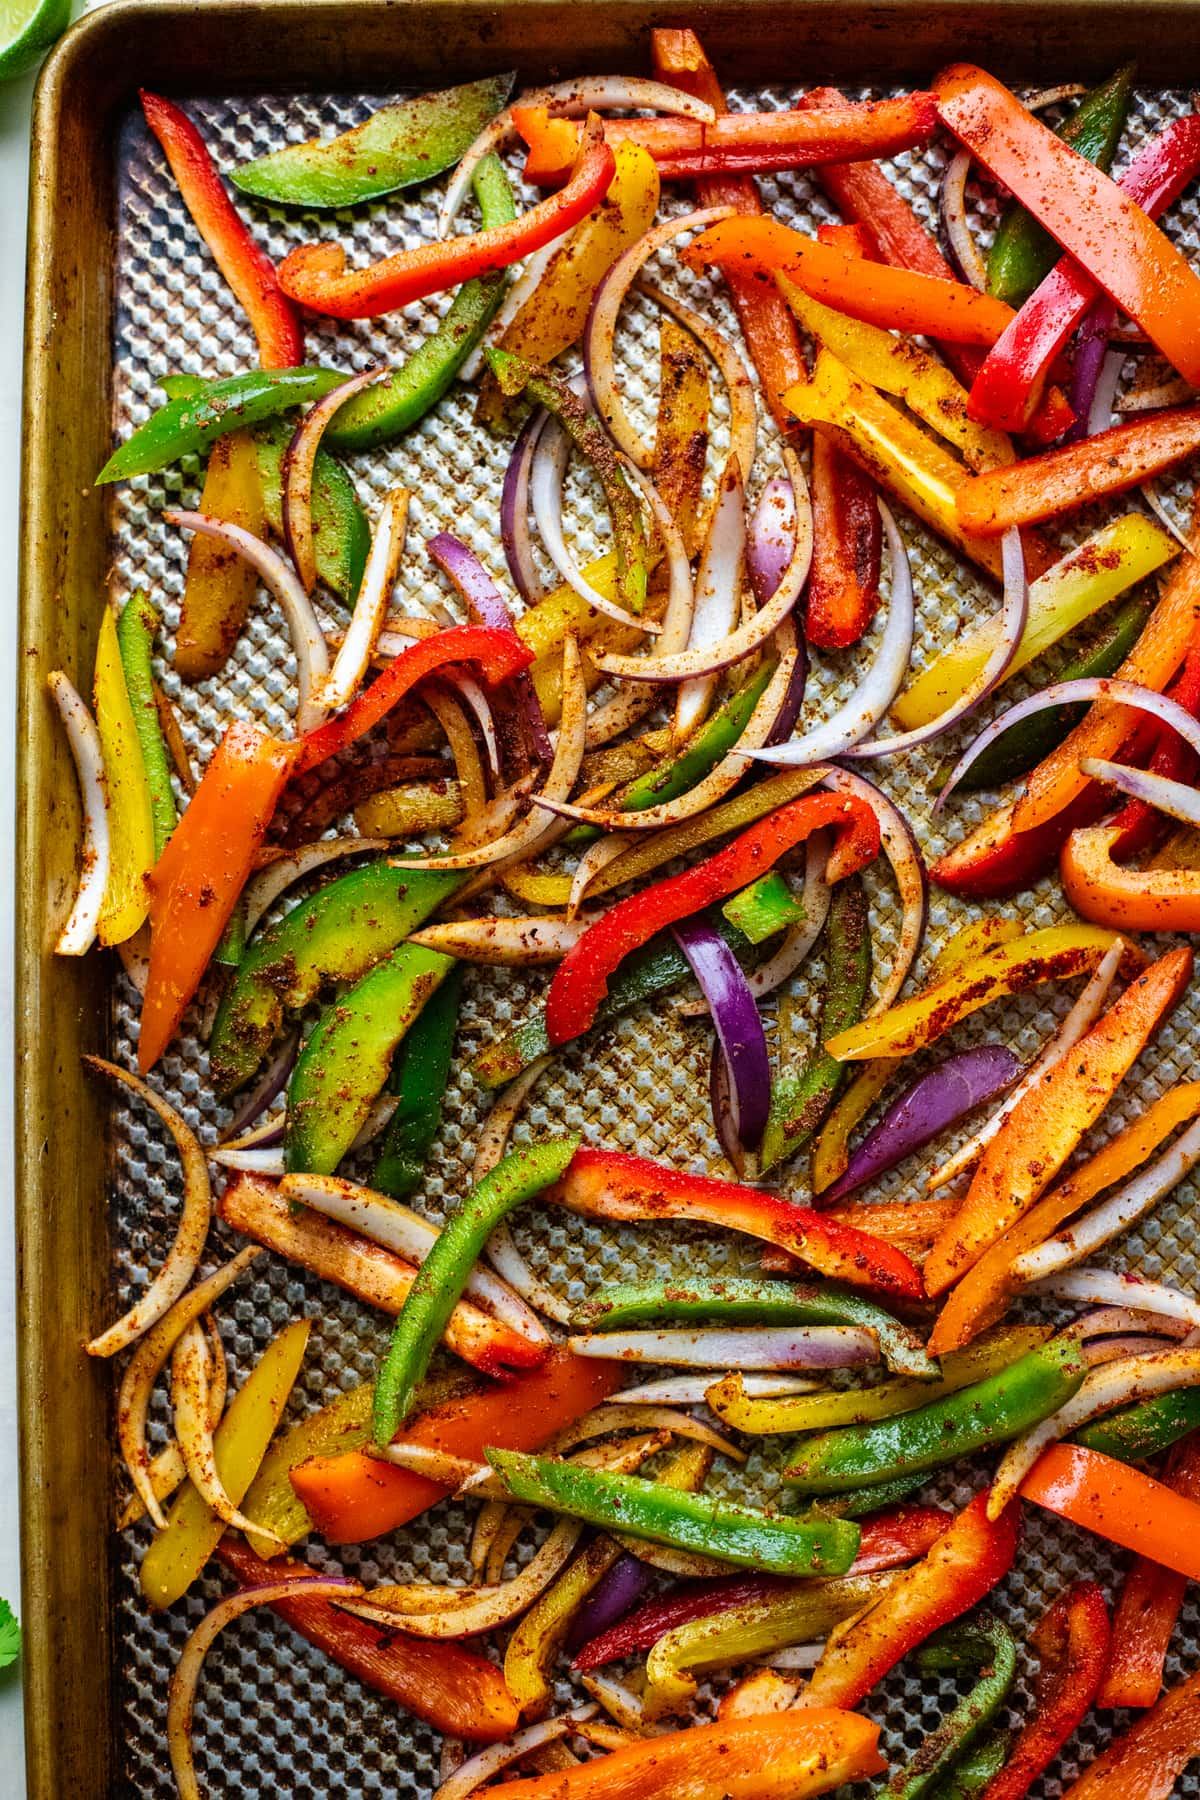 different colored sliced bell peppers and red onion on sheet pan.